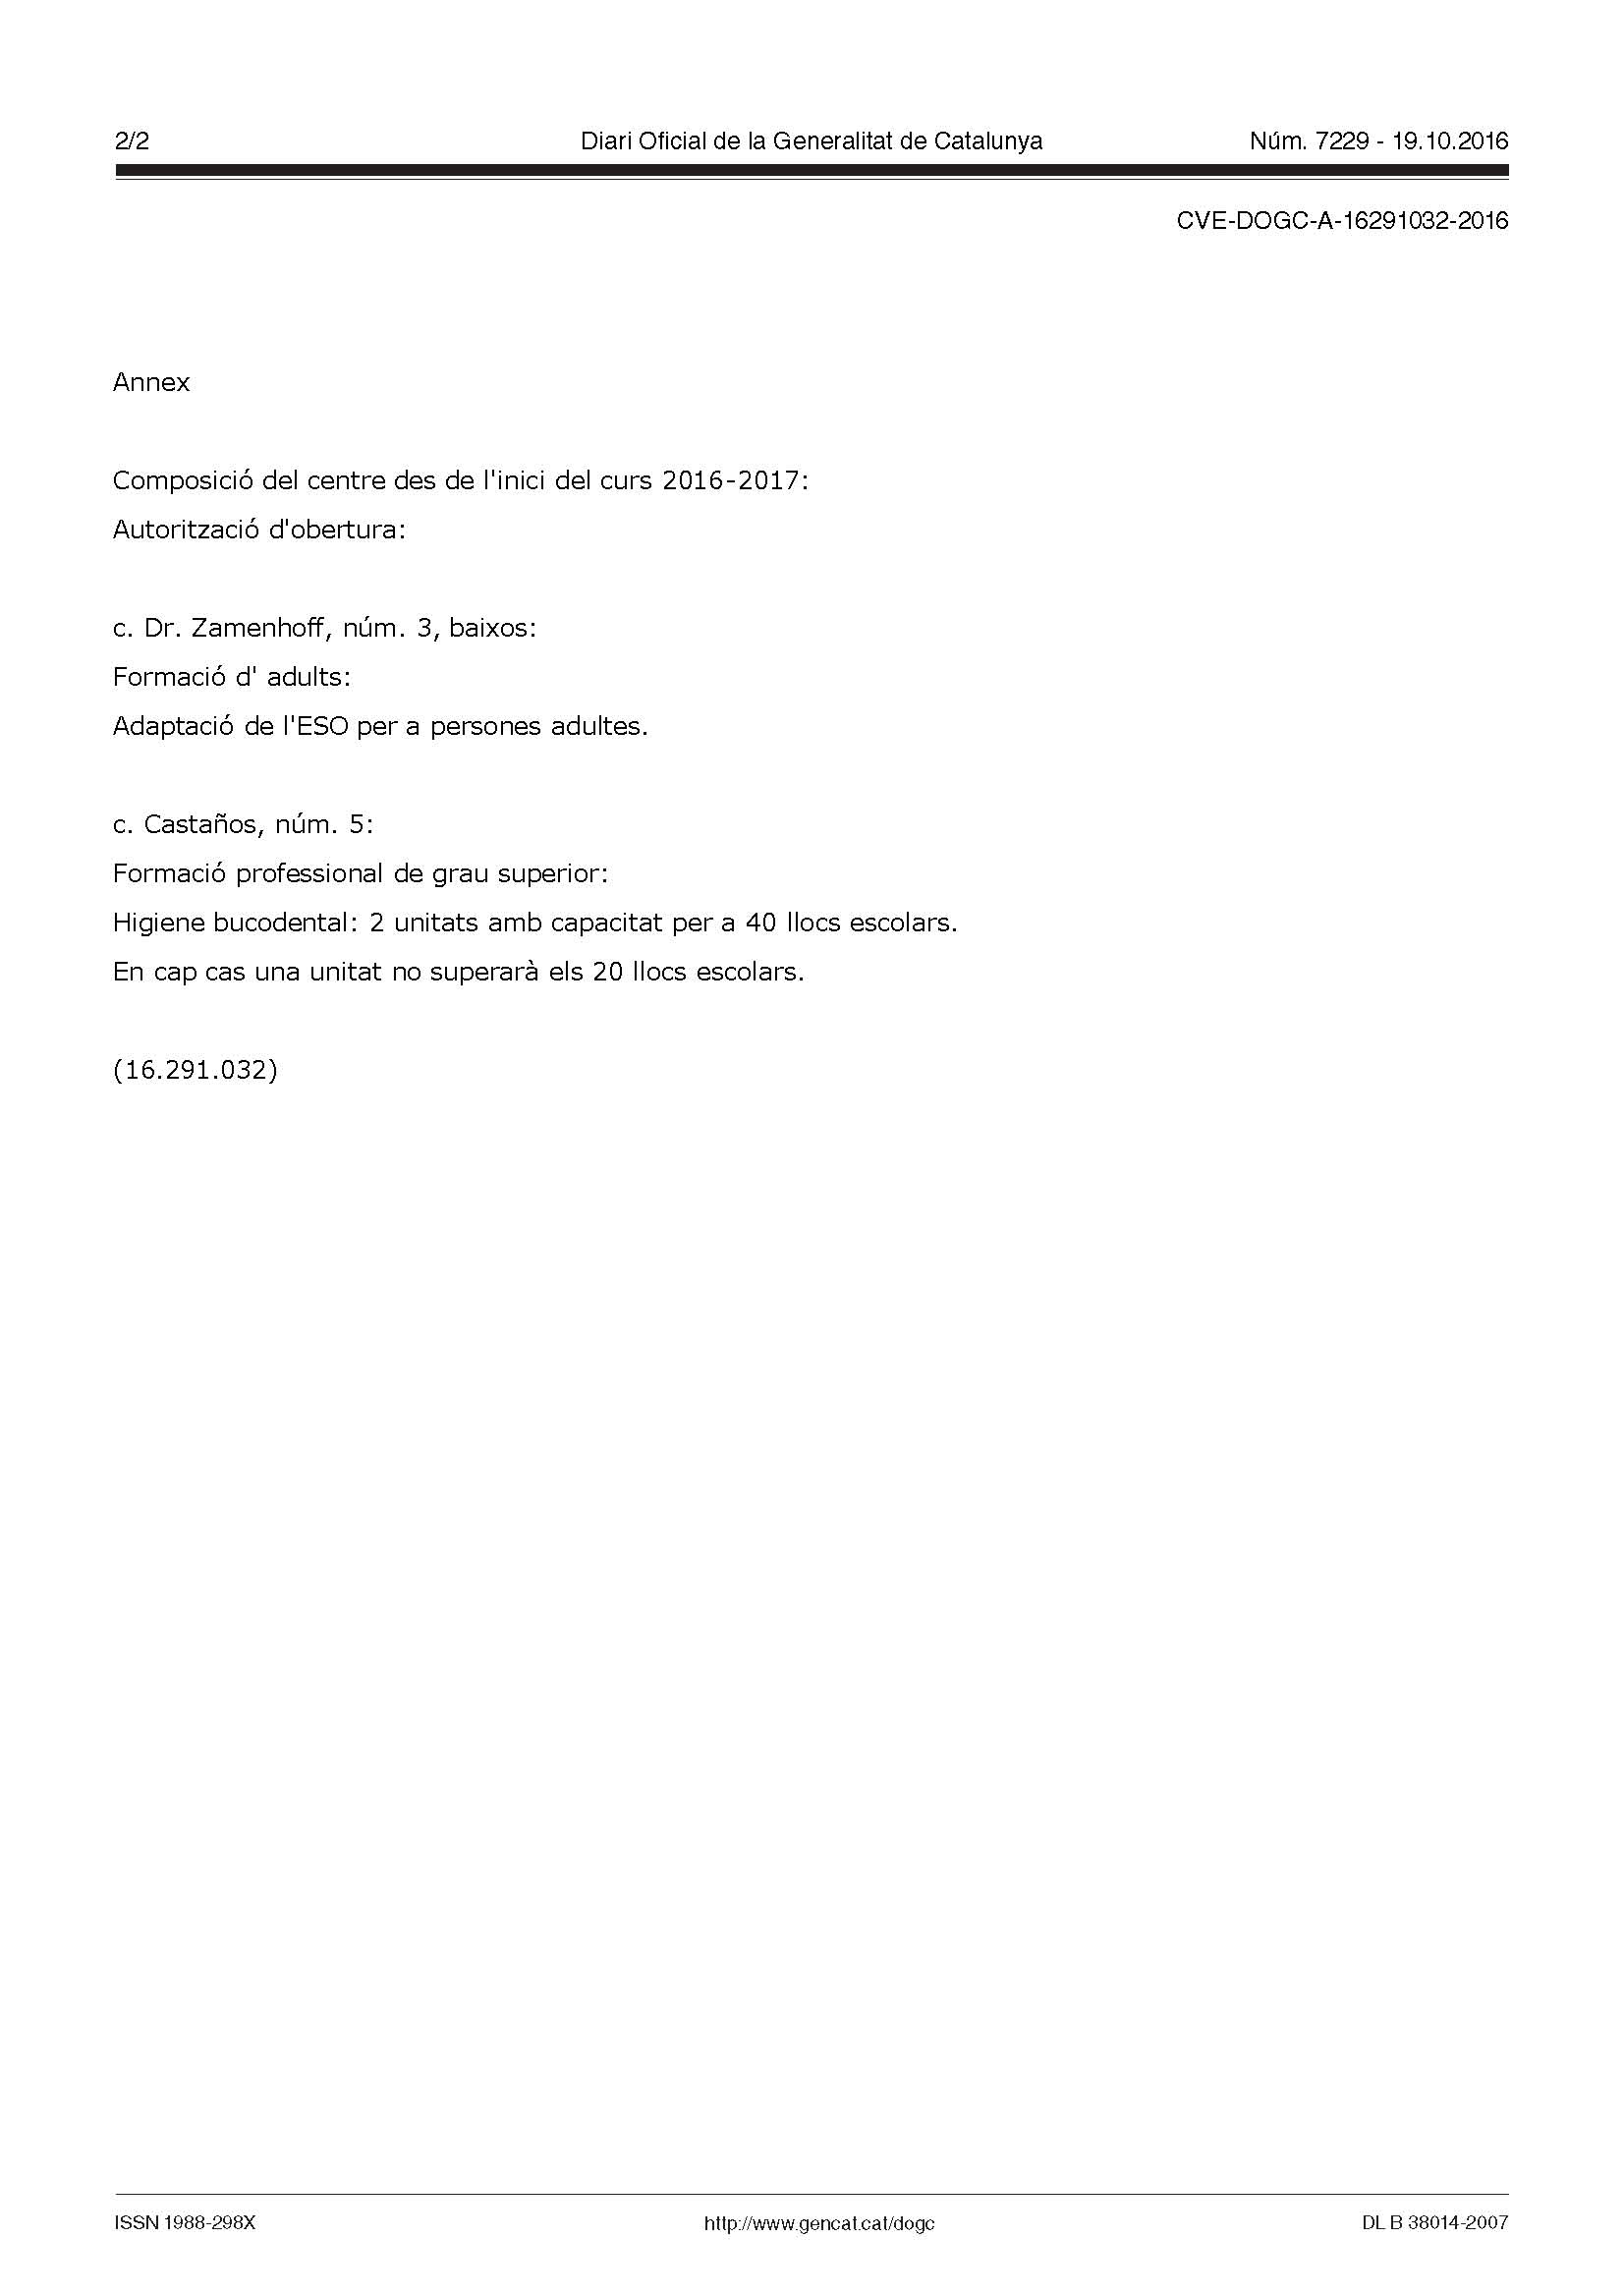 doc_page_2